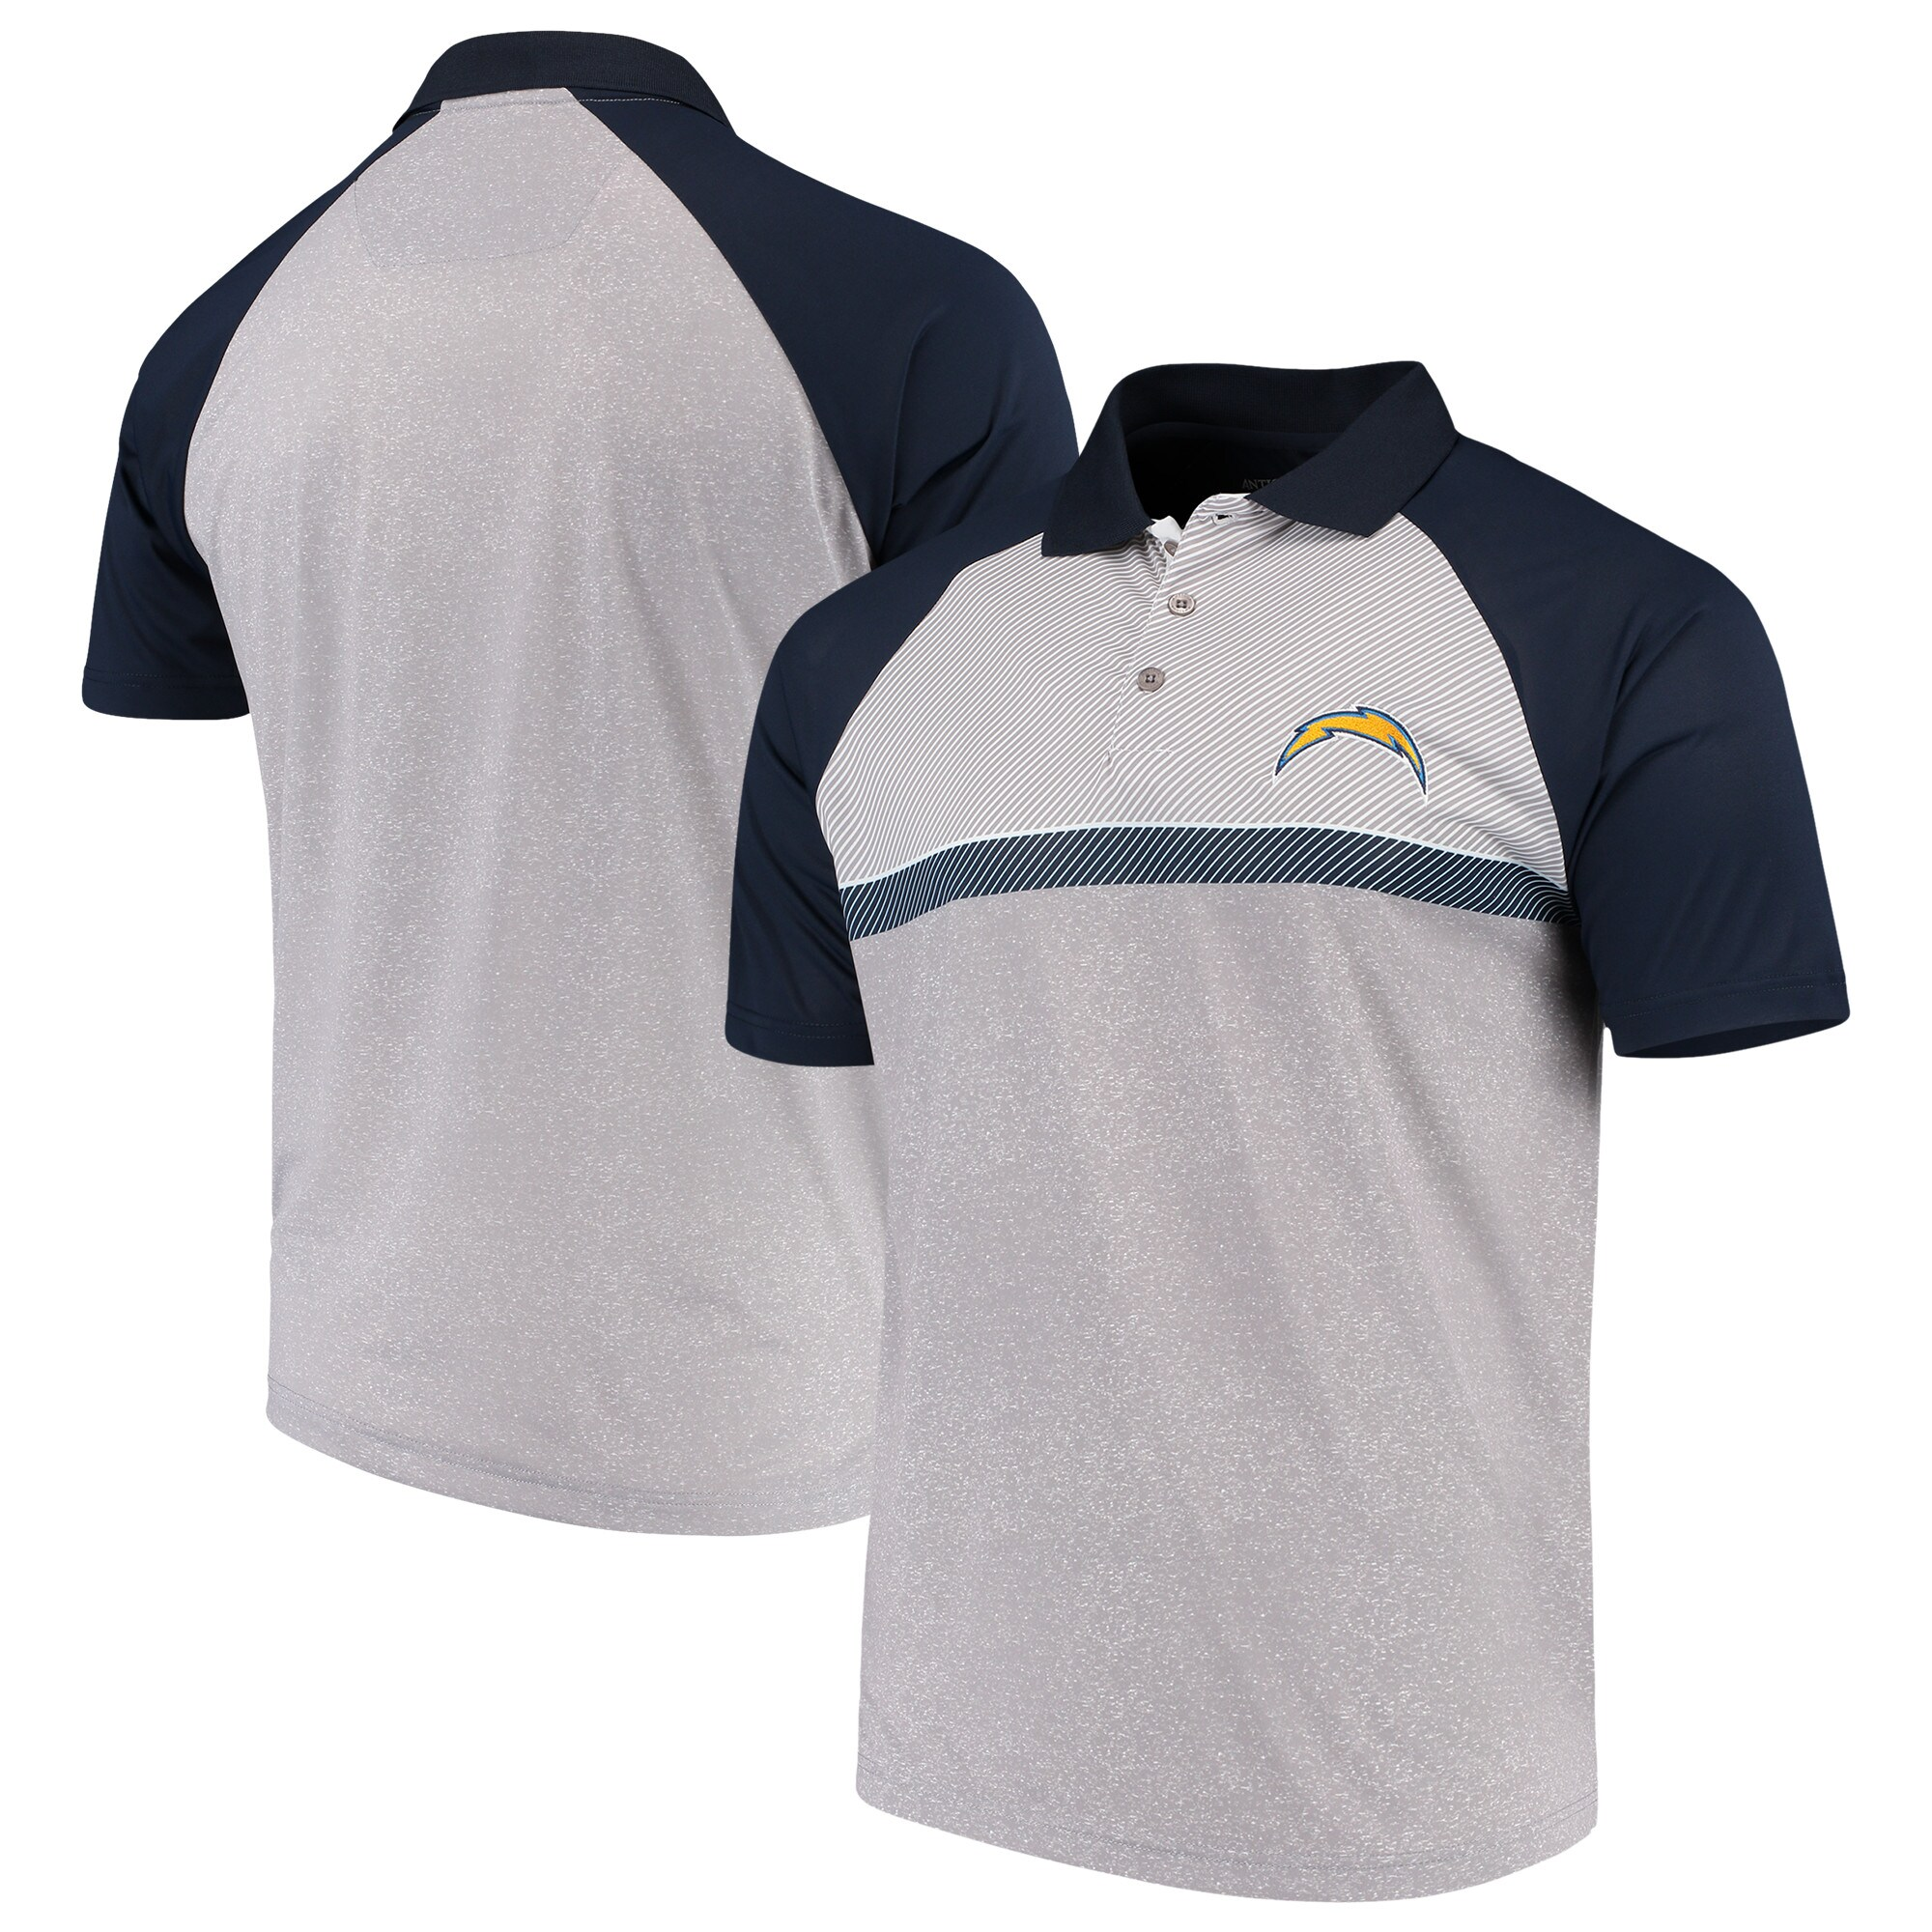 Los Angeles Chargers Antigua Momentum Polo - Gray/Navy